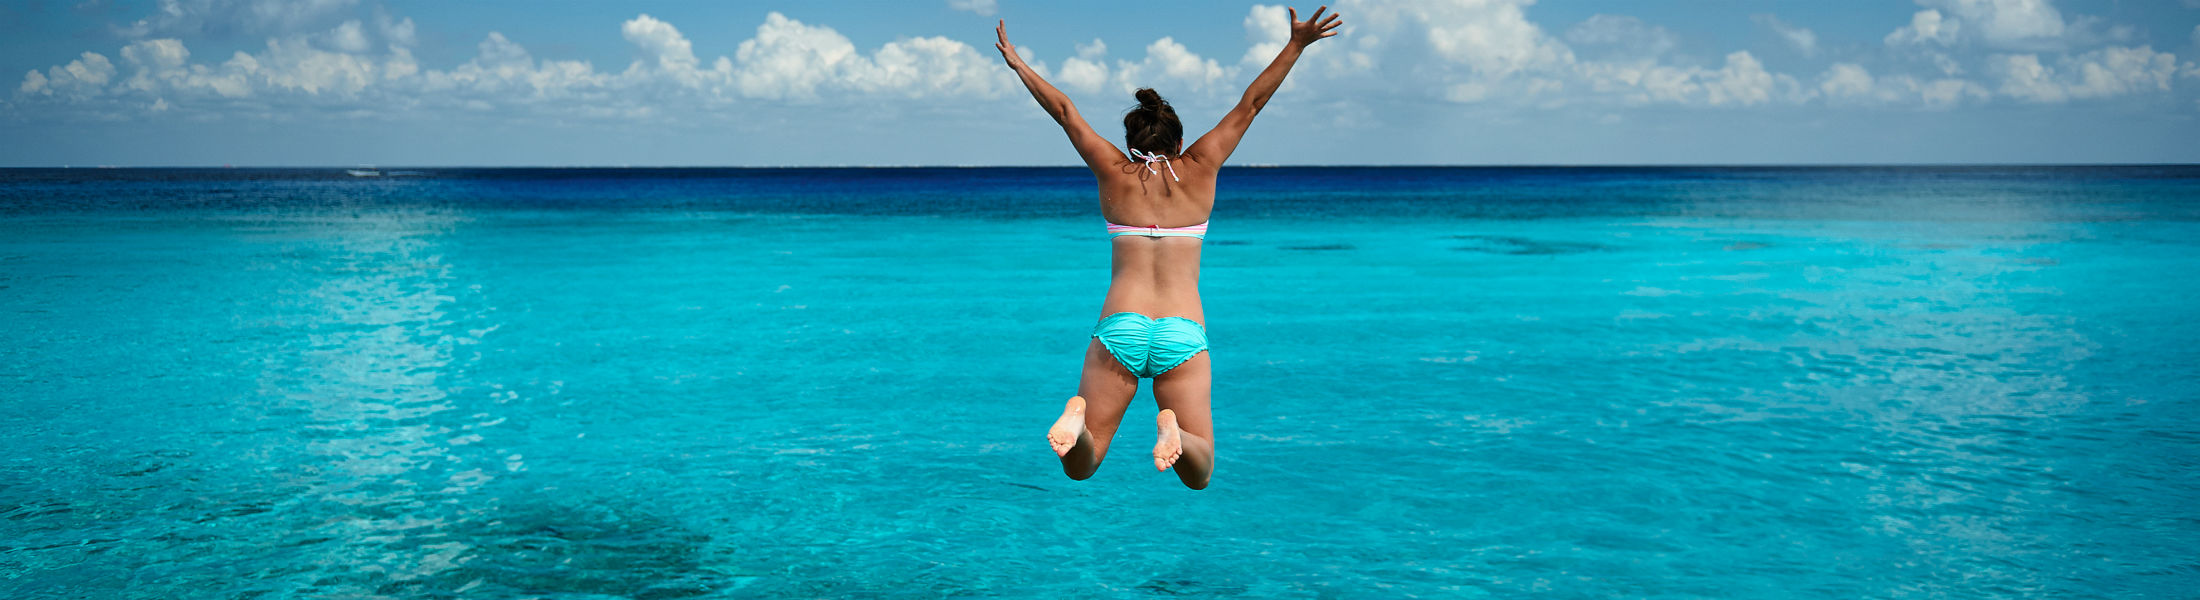 Woman jumping in blue water in tropical sea water